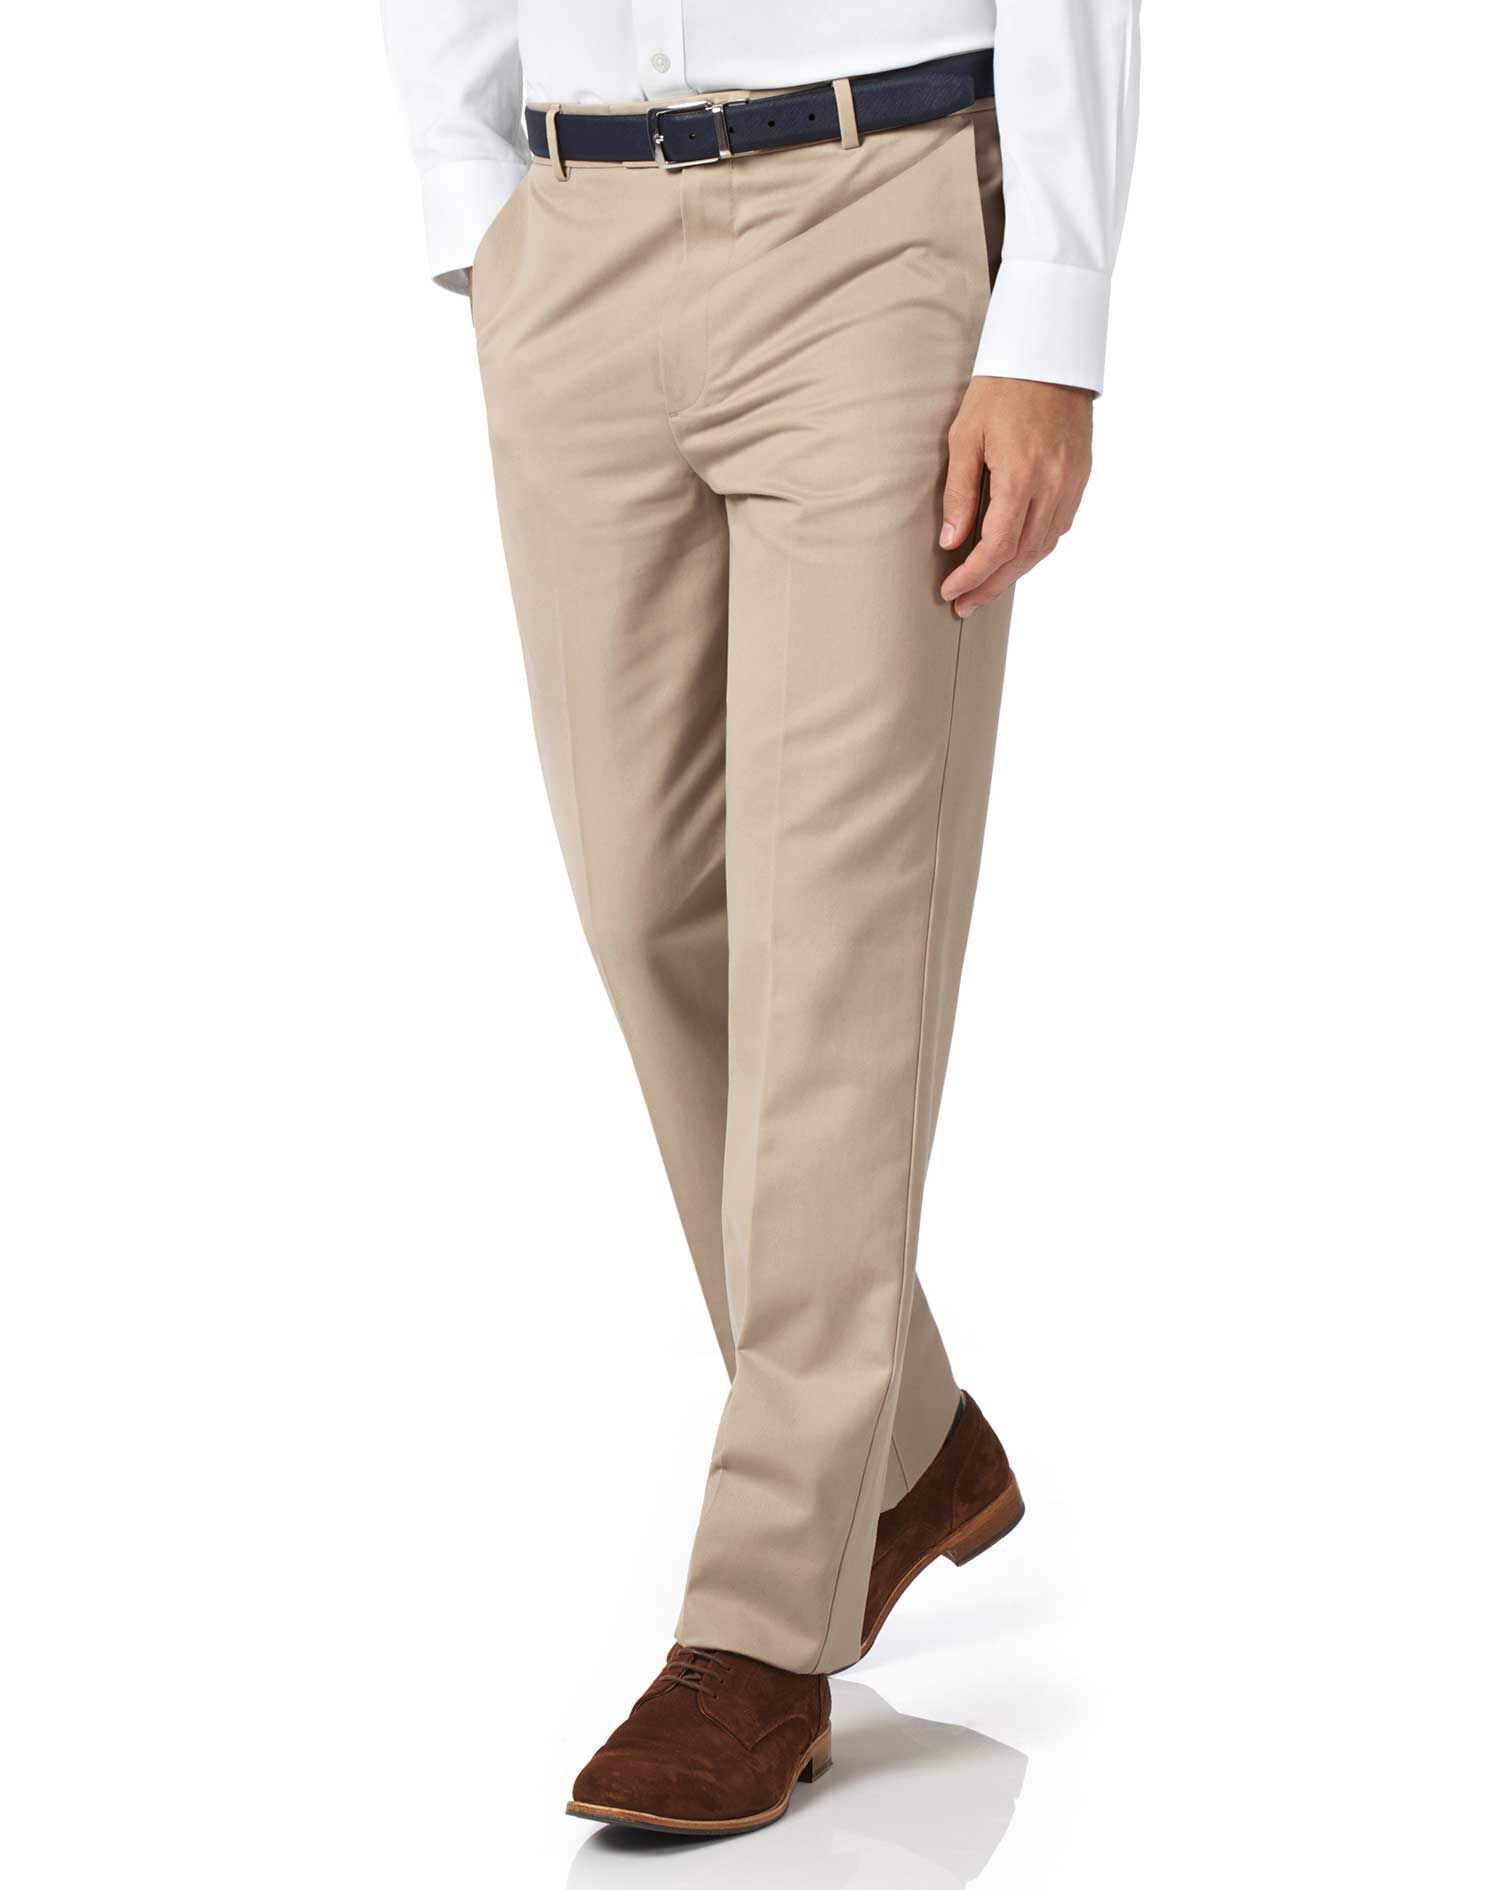 Stone Classic Fit Flat Front Non-Iron Cotton Chino Trousers Size W36 L30 by Charles Tyrwhitt